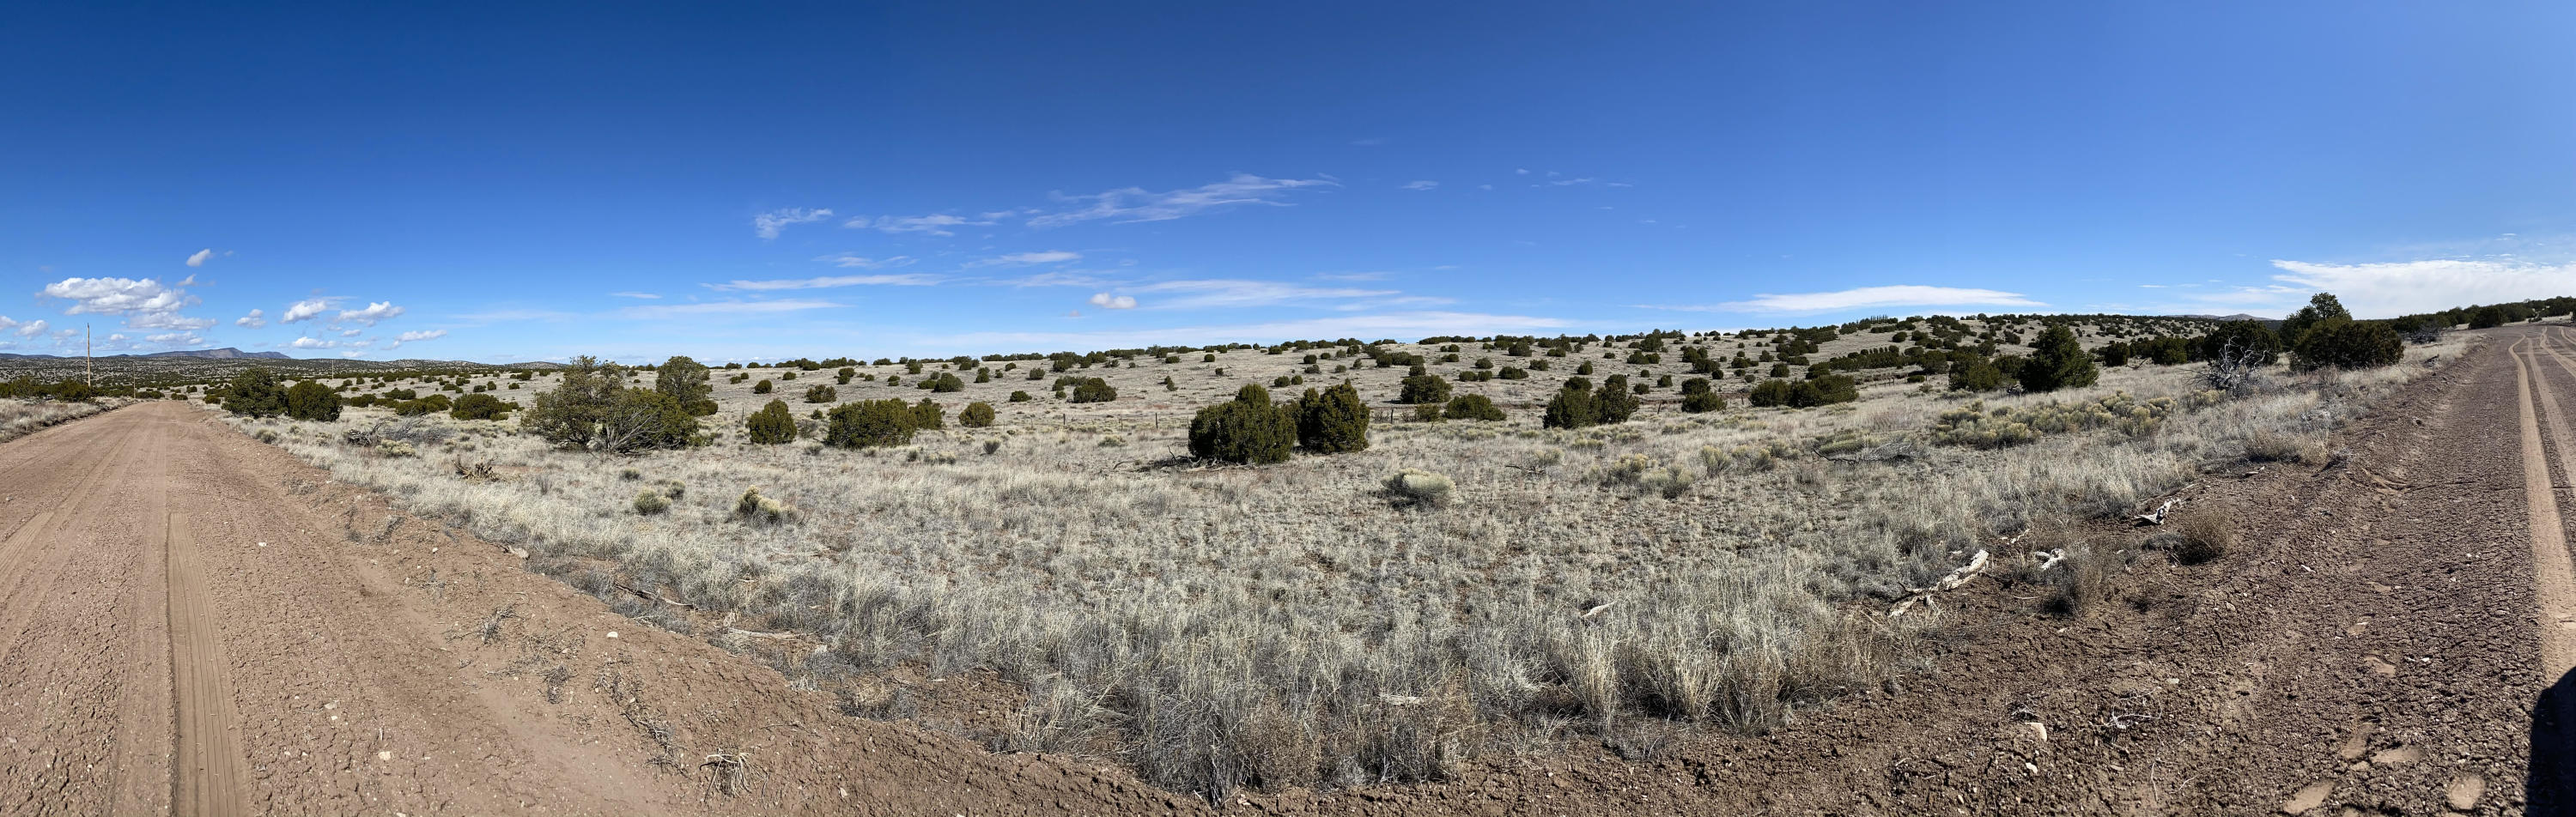 Lot 43 Pinon Springs, Magdalena, NM 87825 - Magdalena, NM real estate listing